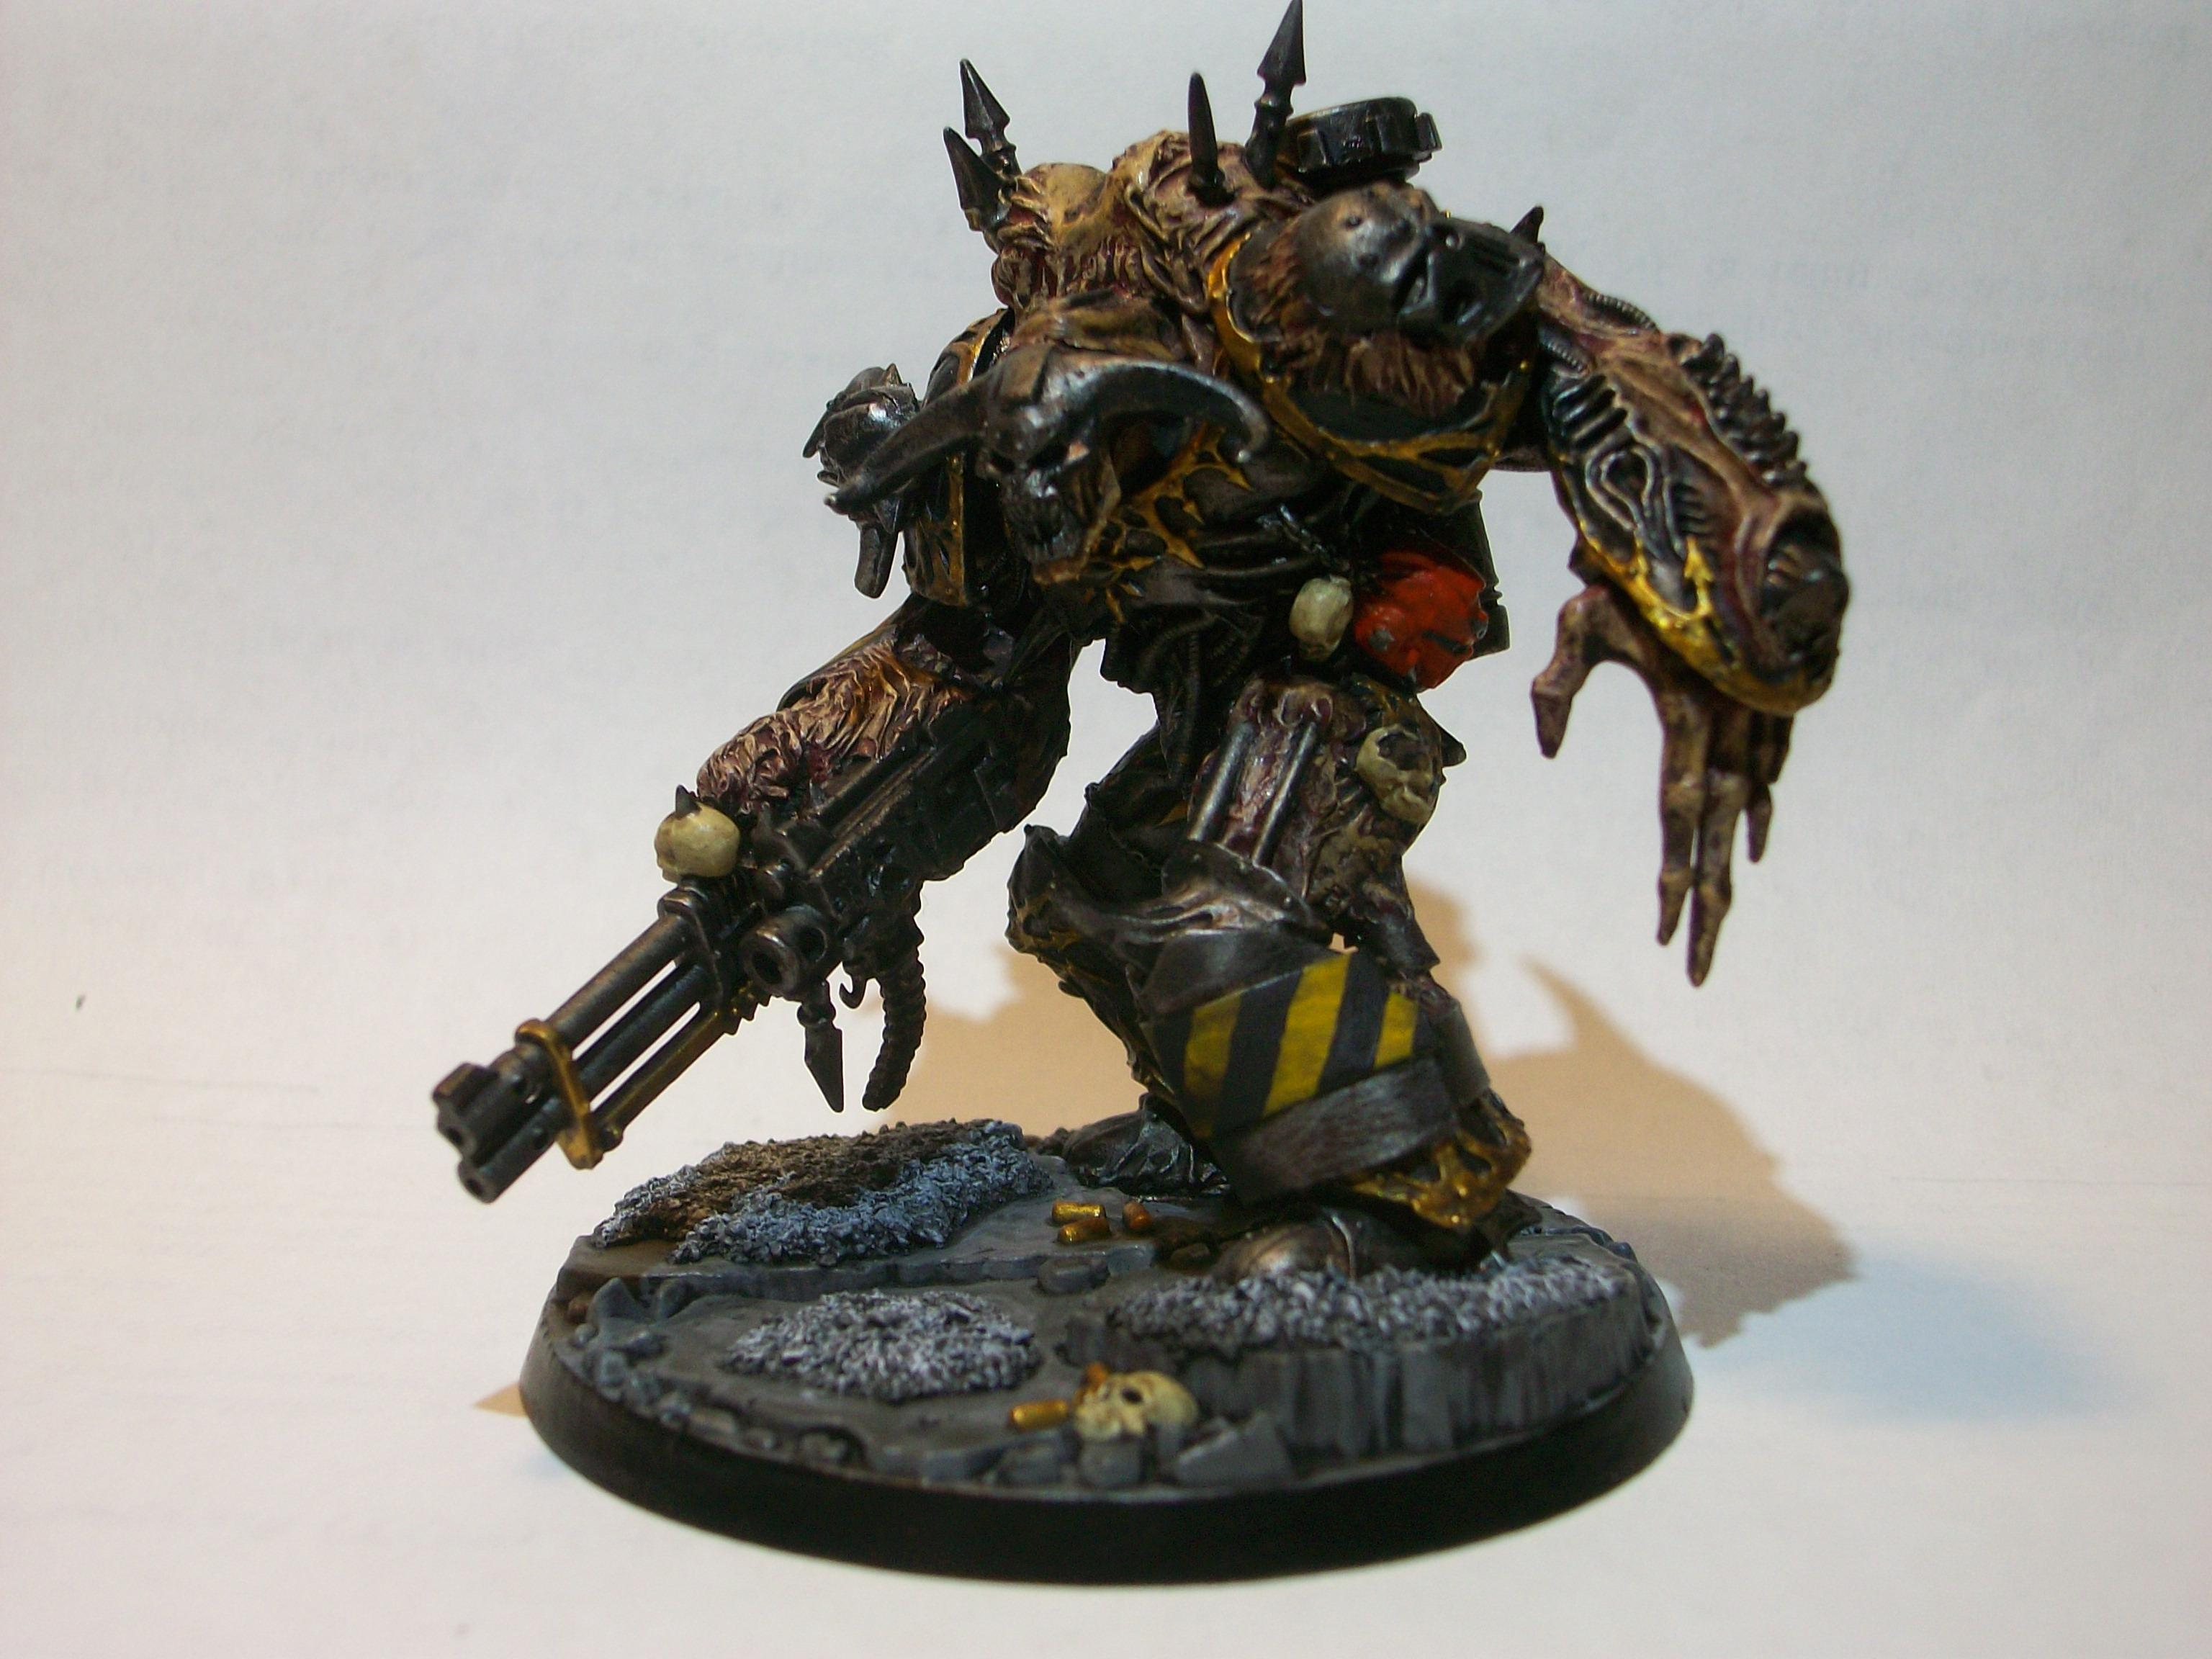 Chaos, Daemons, Iron, Legion, Prince, Space, Space Marines, Traitor, Warriors